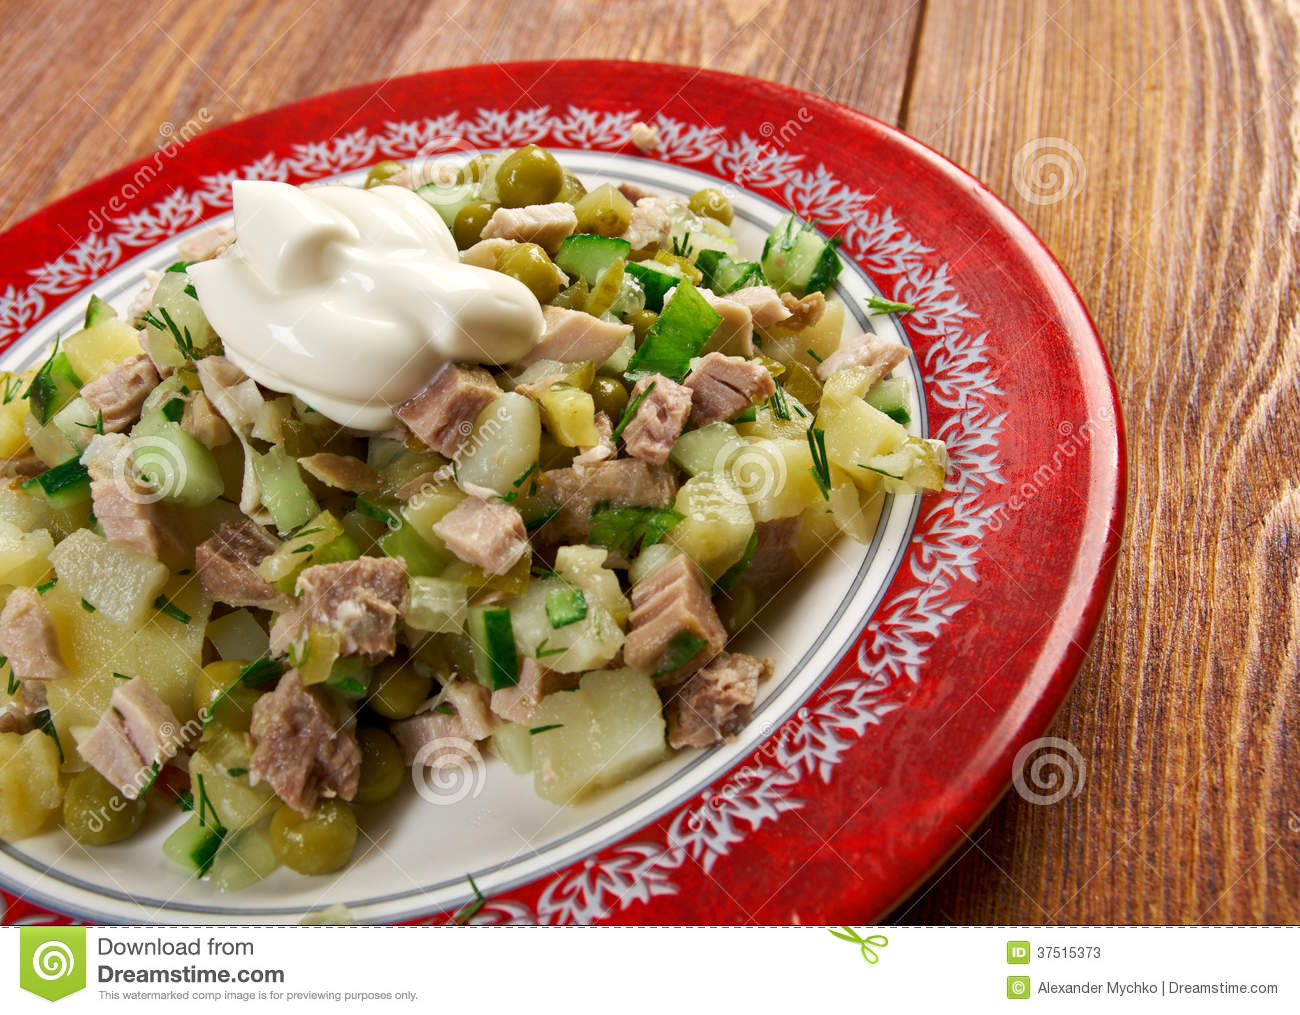 Salade traditionnelle russe olivier photos stock image - Cuisine traditionnelle russe ...